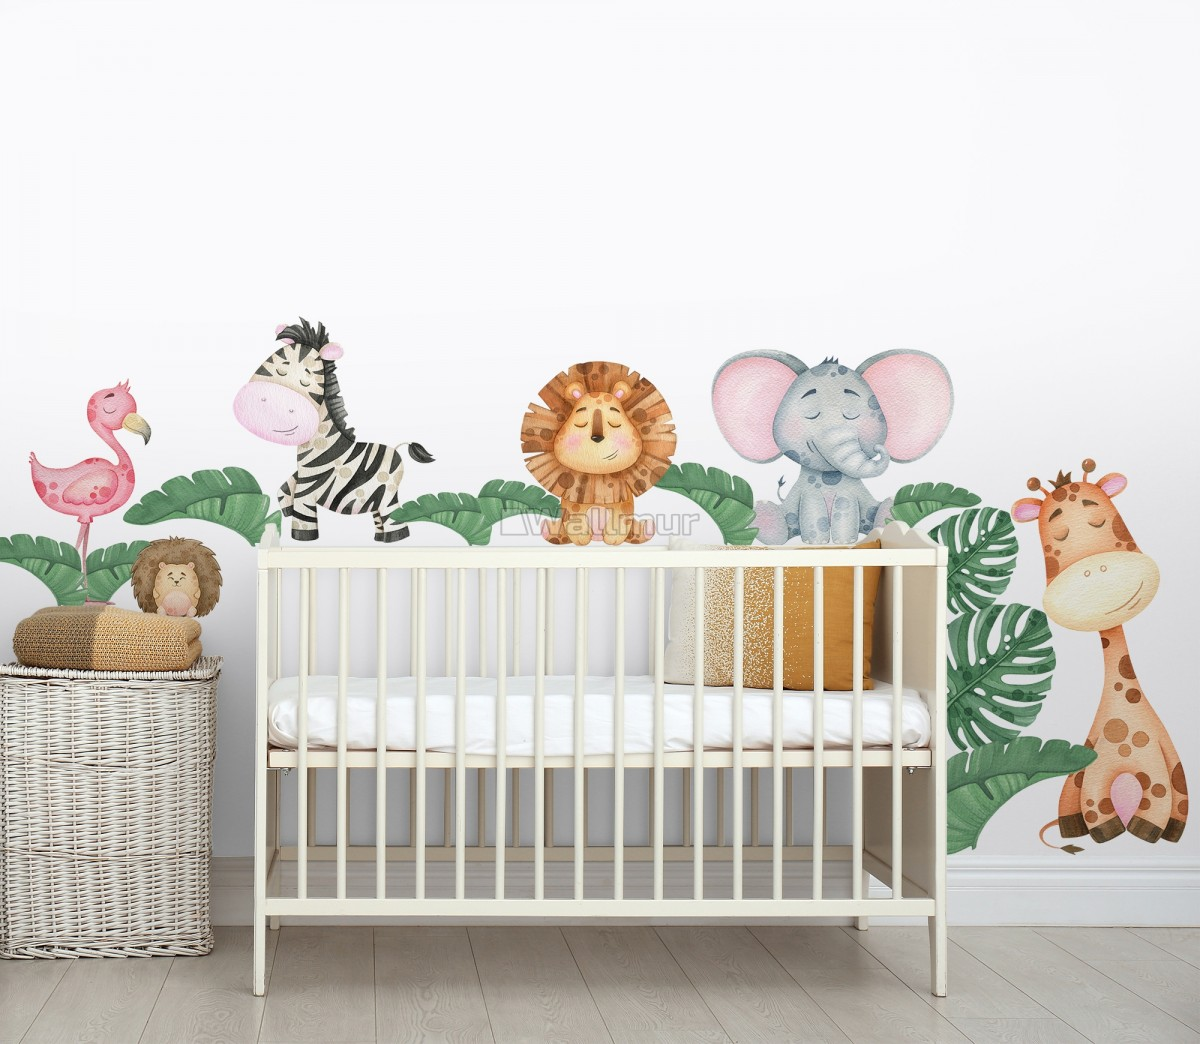 Kids Cute Forest Animal with Banana Leaves Wall Decal Sticker